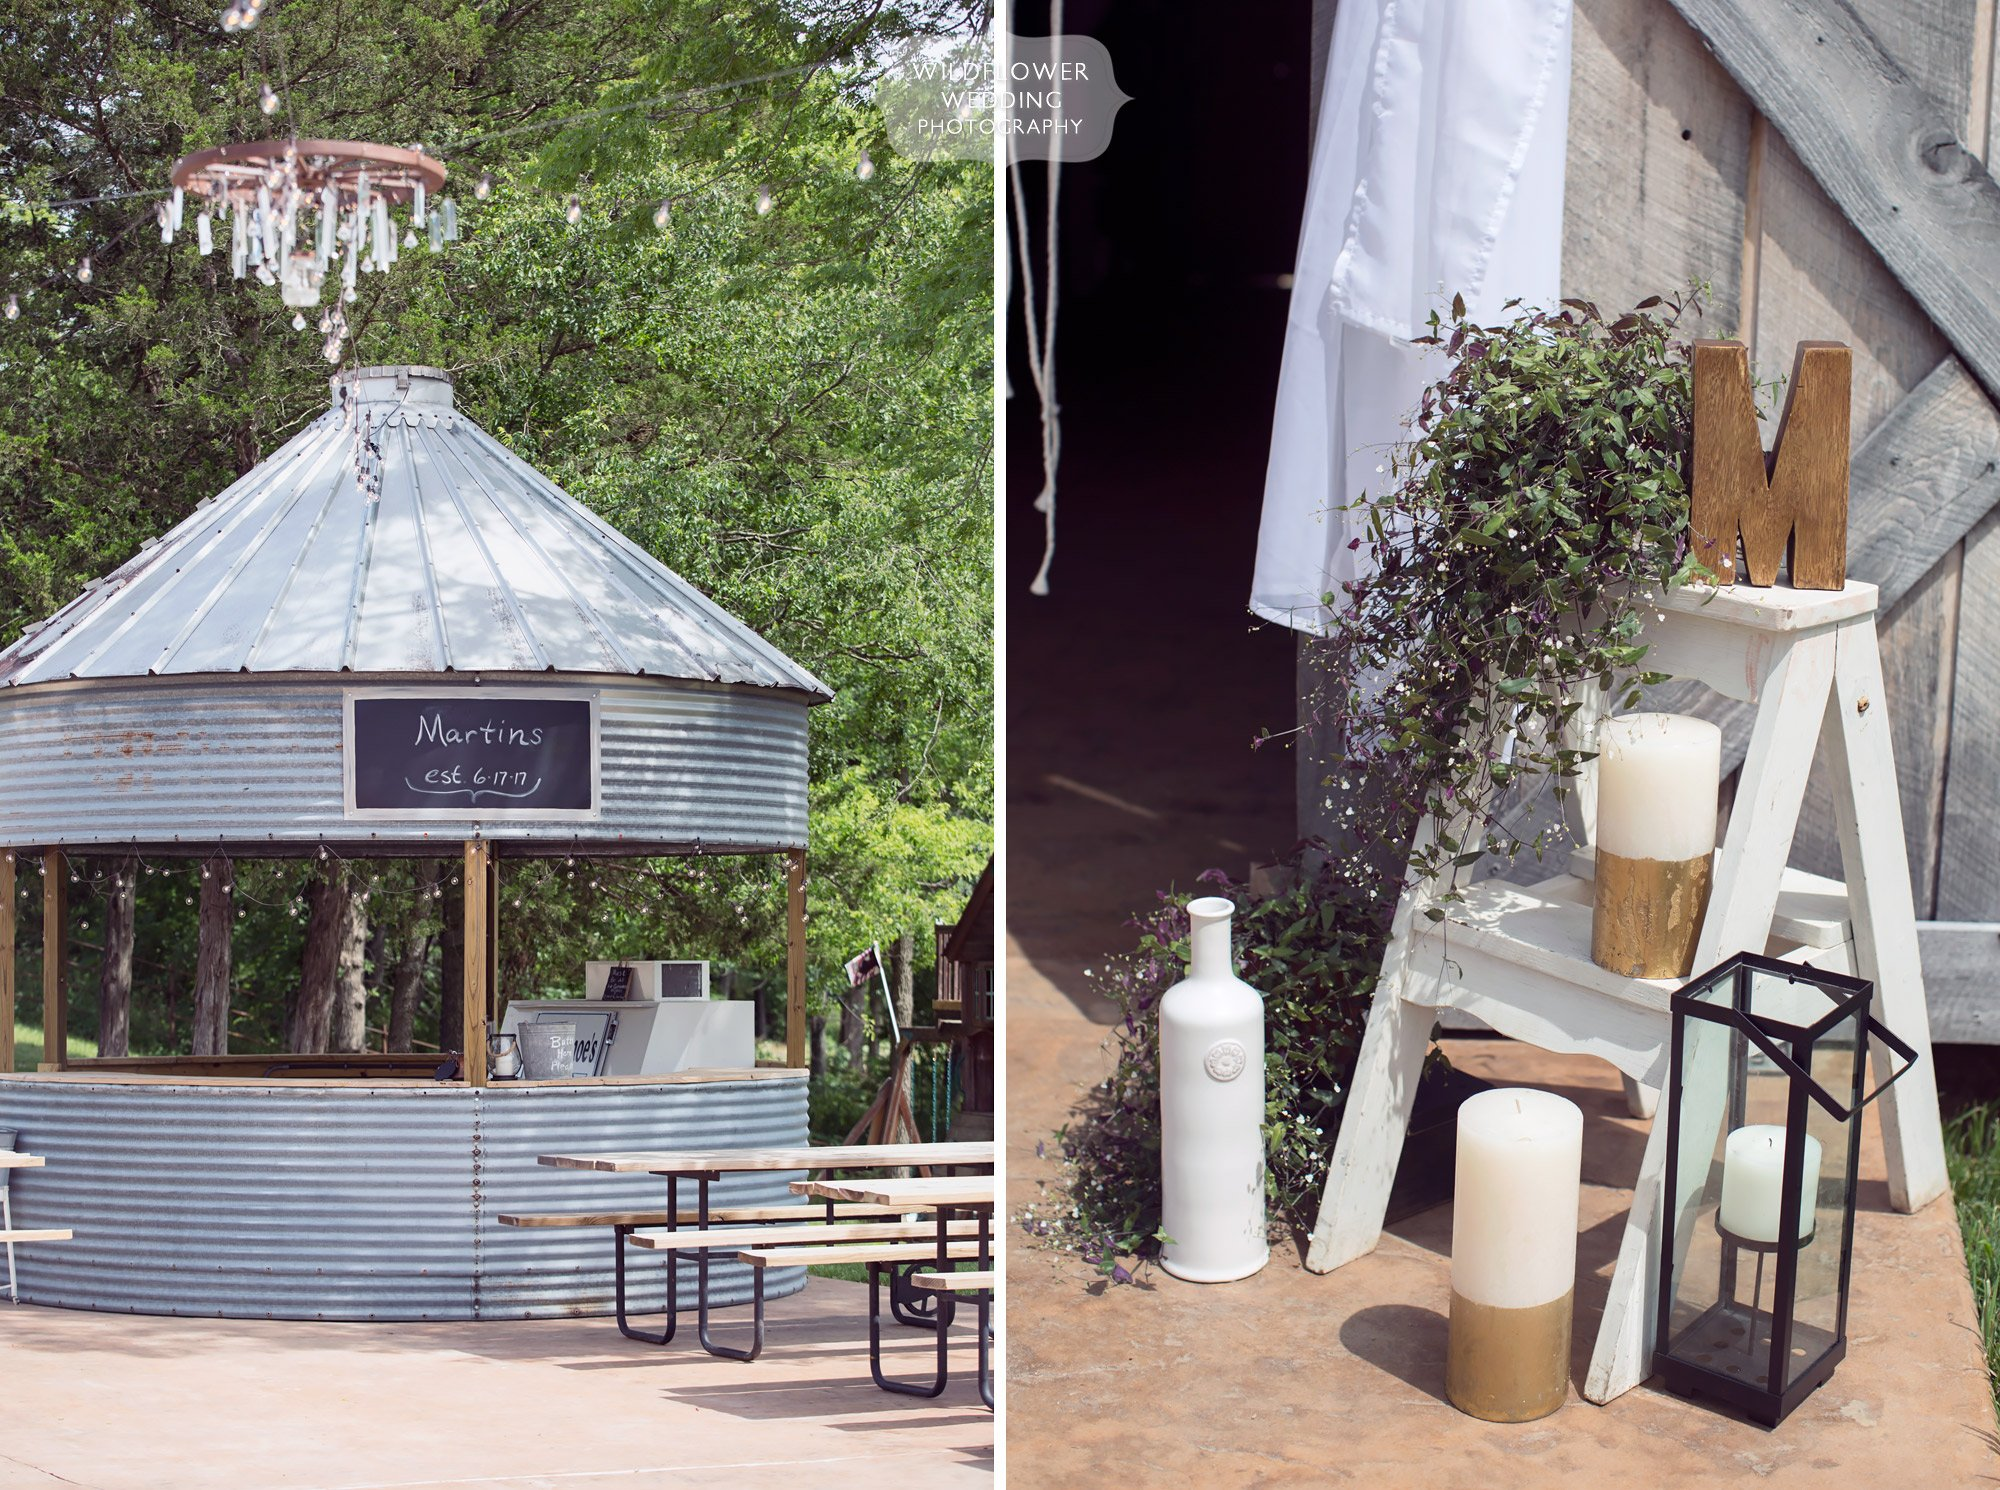 These unique antique silo bars at the Kempker's Back 40 barn venue in MO were the coolest drink stations ever!